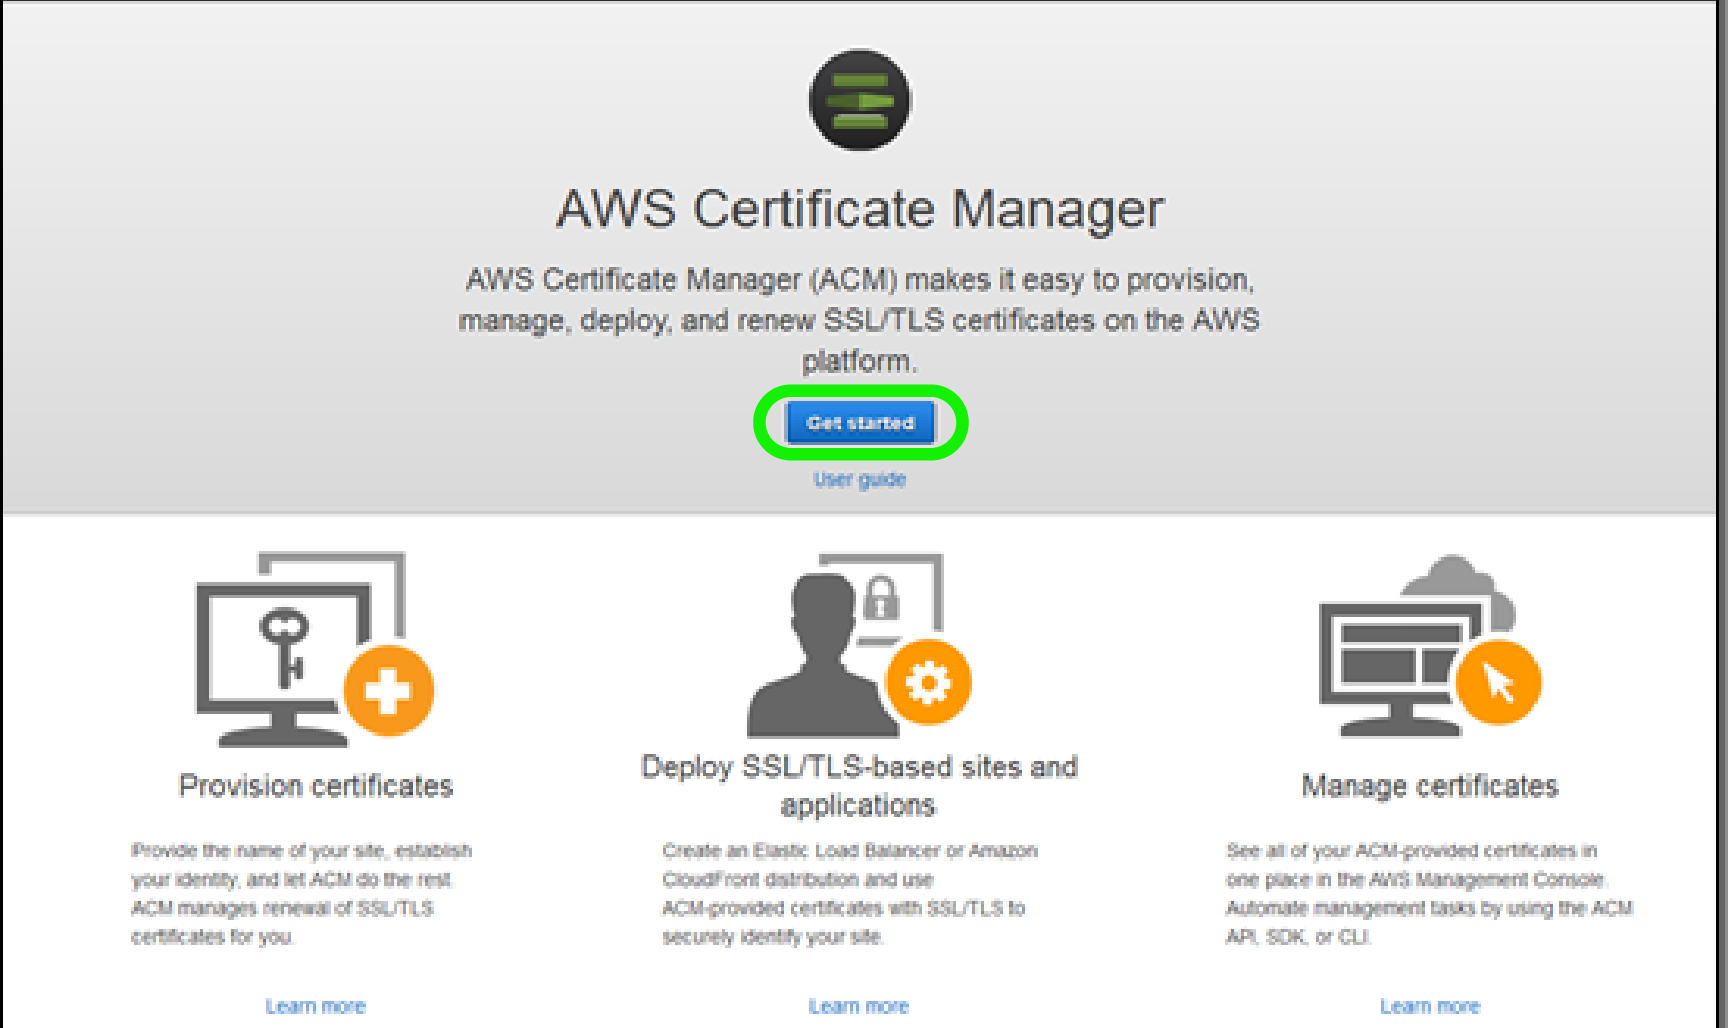 AWS Certificate Manager - Get Started